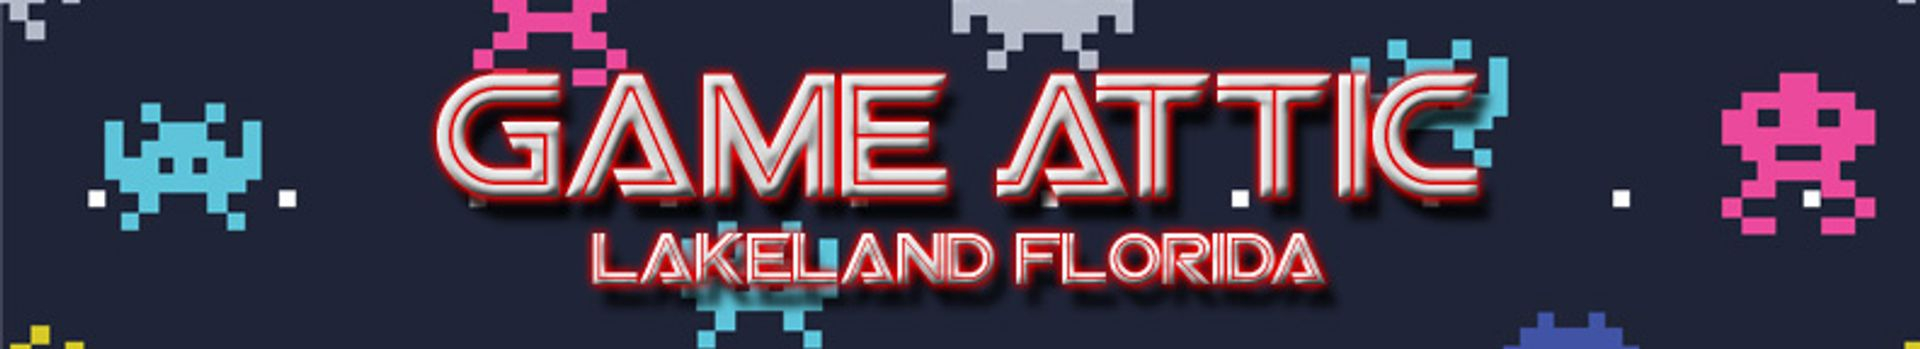 NEW Game Attic Lakeland